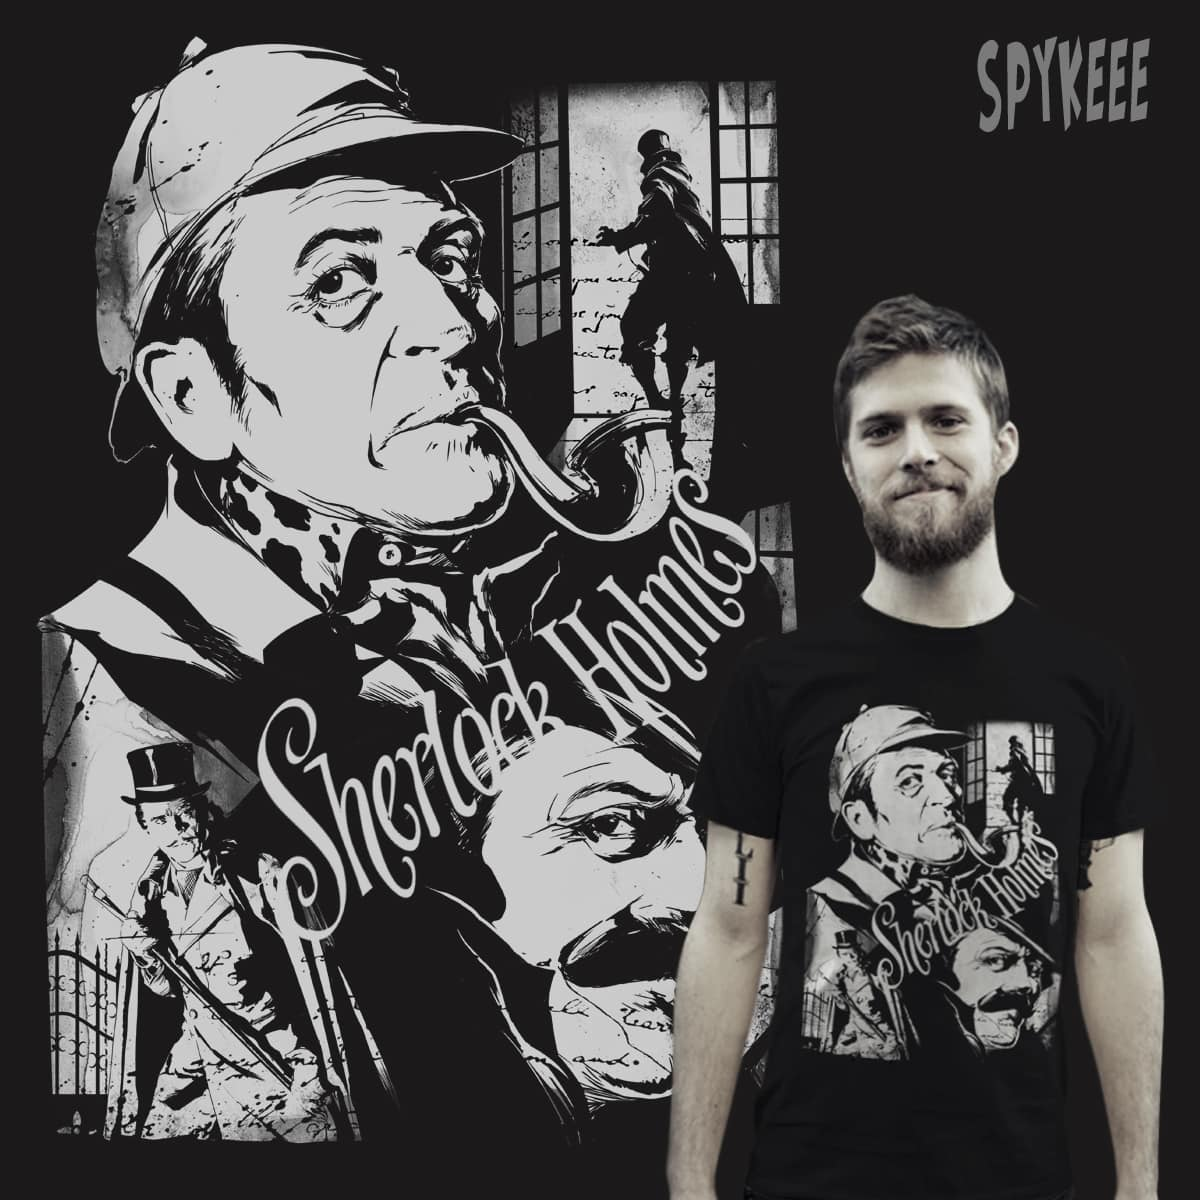 The curious case of De Niece by SPYKEEE on Threadless